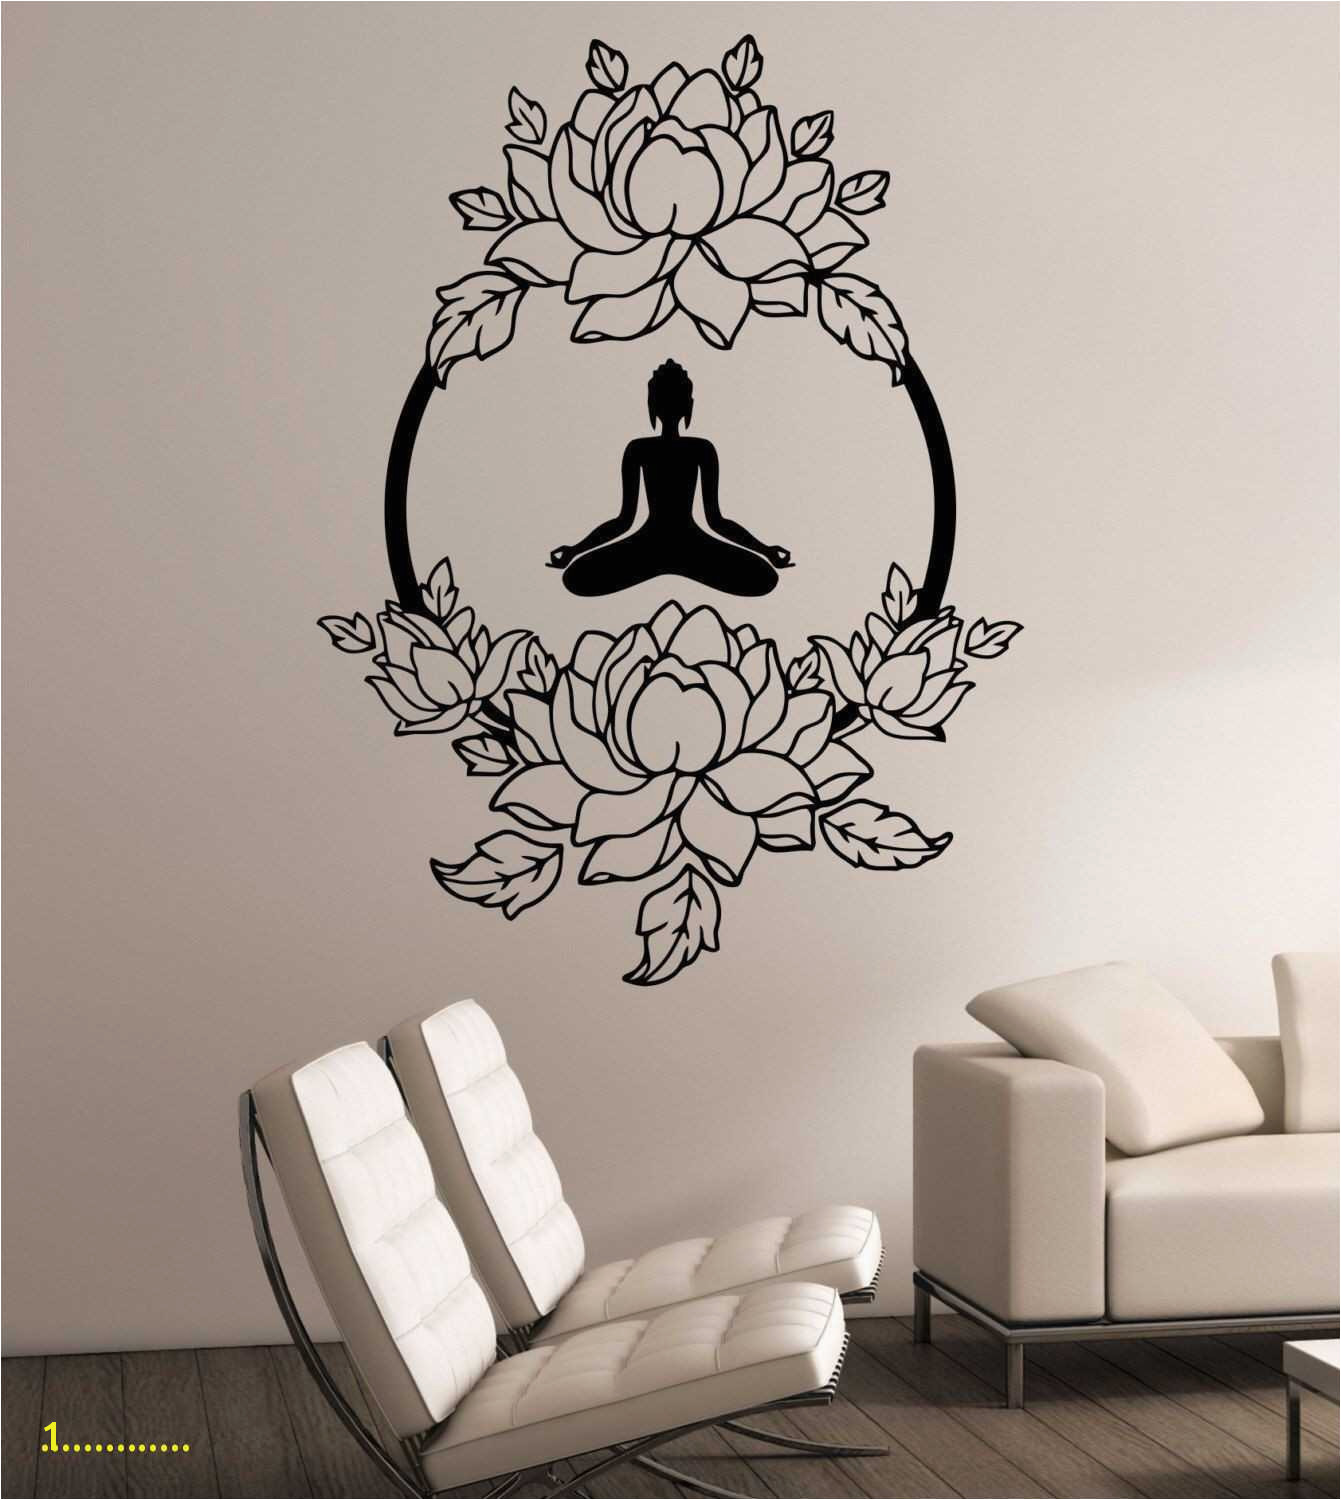 Wall Decal Luxury 1 Kirkland Wall Decor Home Design 0d Outdoor Design Christmas Wall Decals